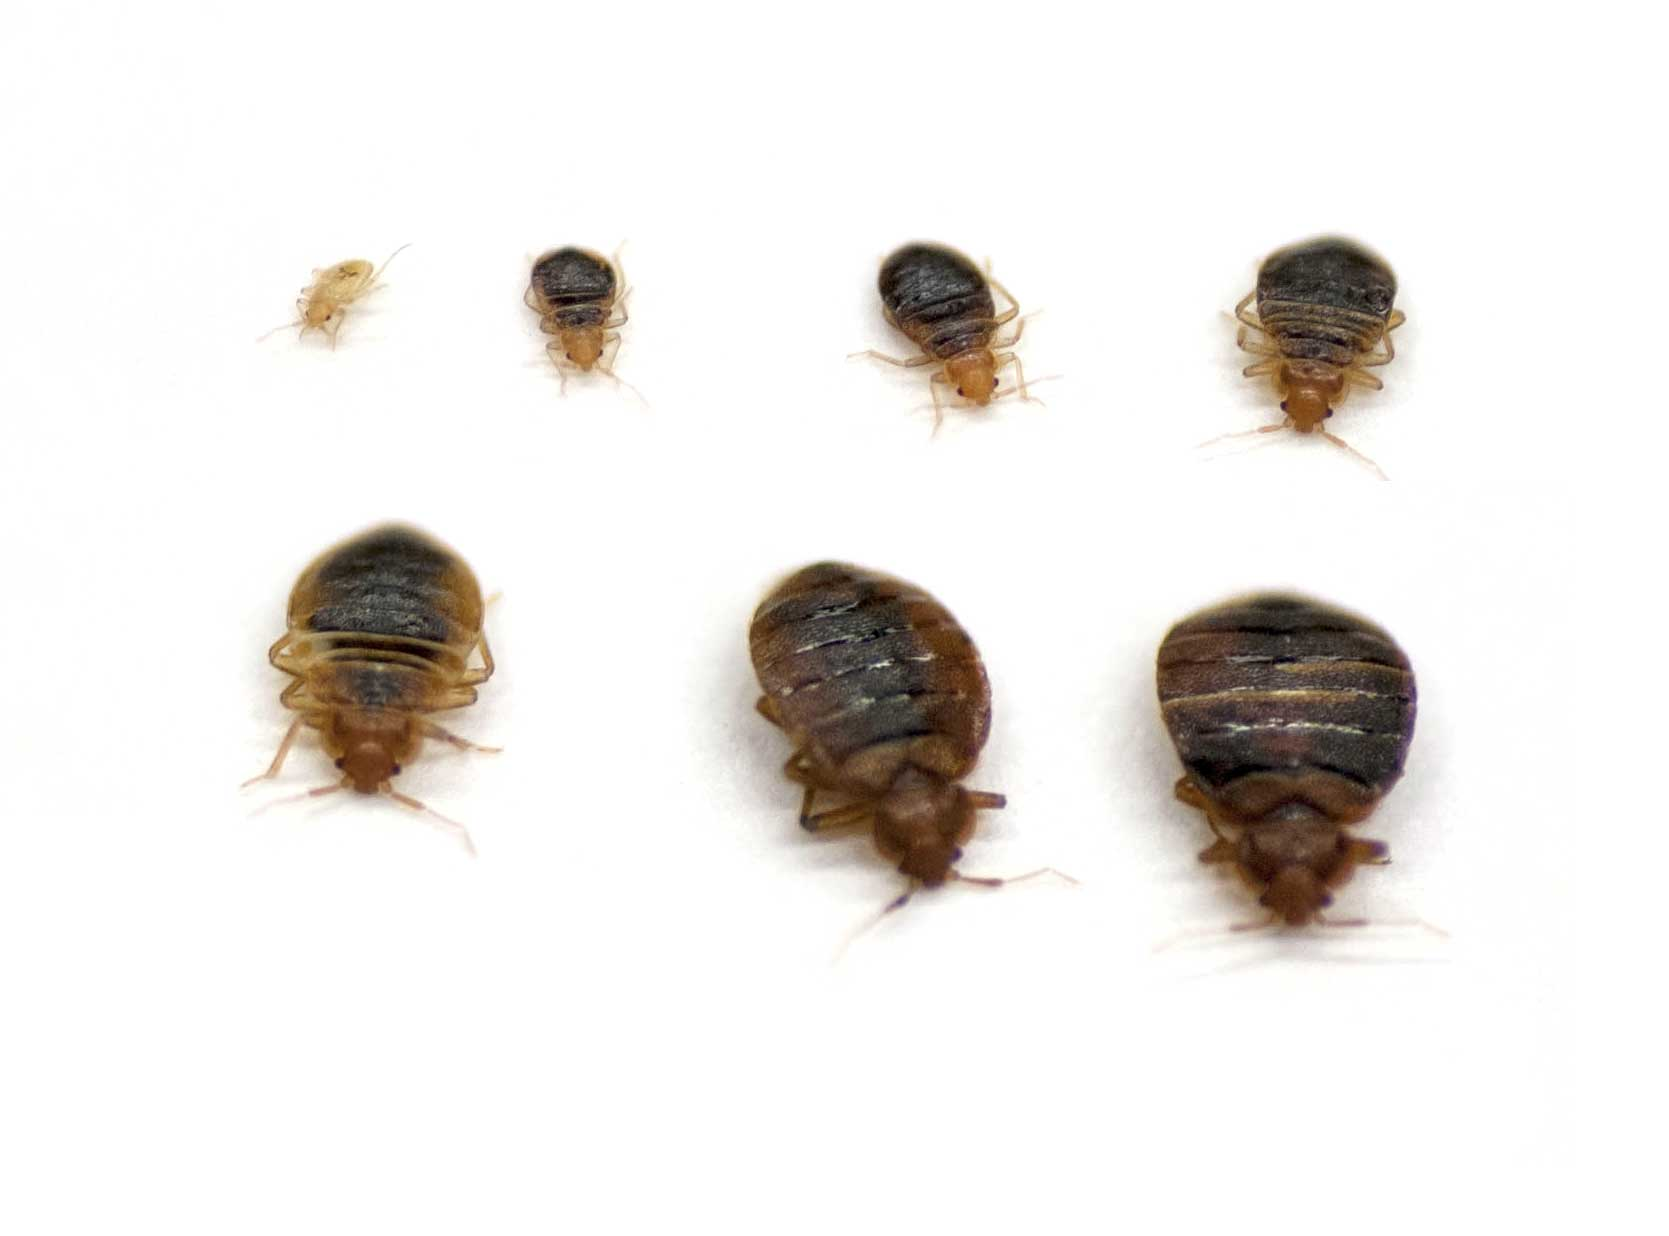 Why Heat Treatment Of Bed Bugs Is Effective Advanced Bed